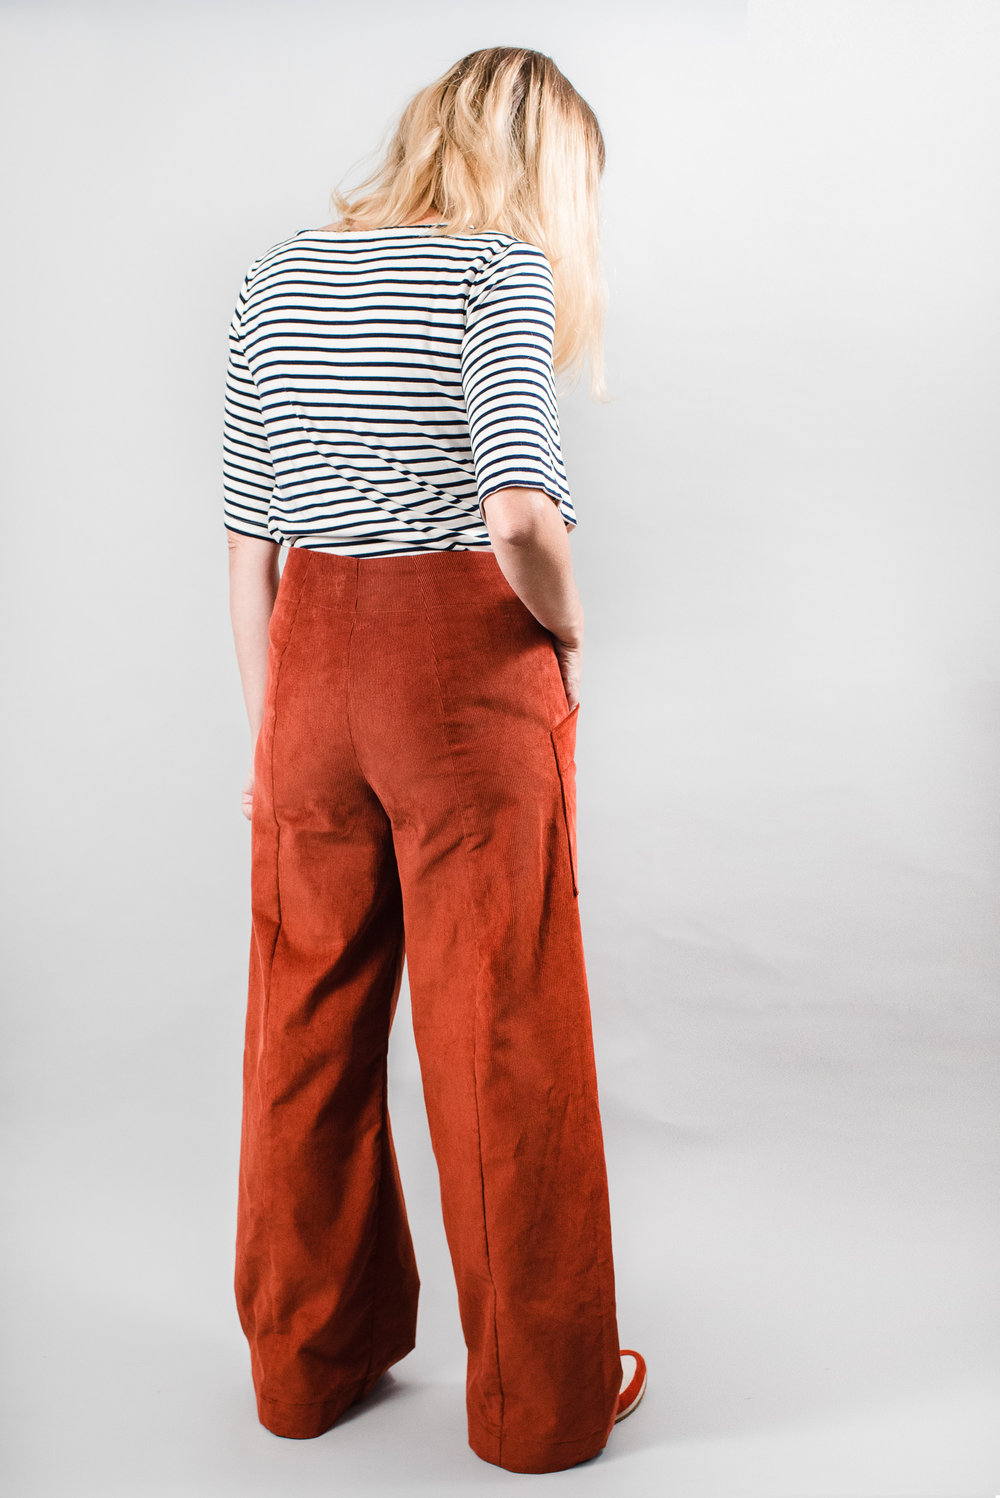 Parasol-high-waisted-trousers-pdf-sewing-pattern08.jpg